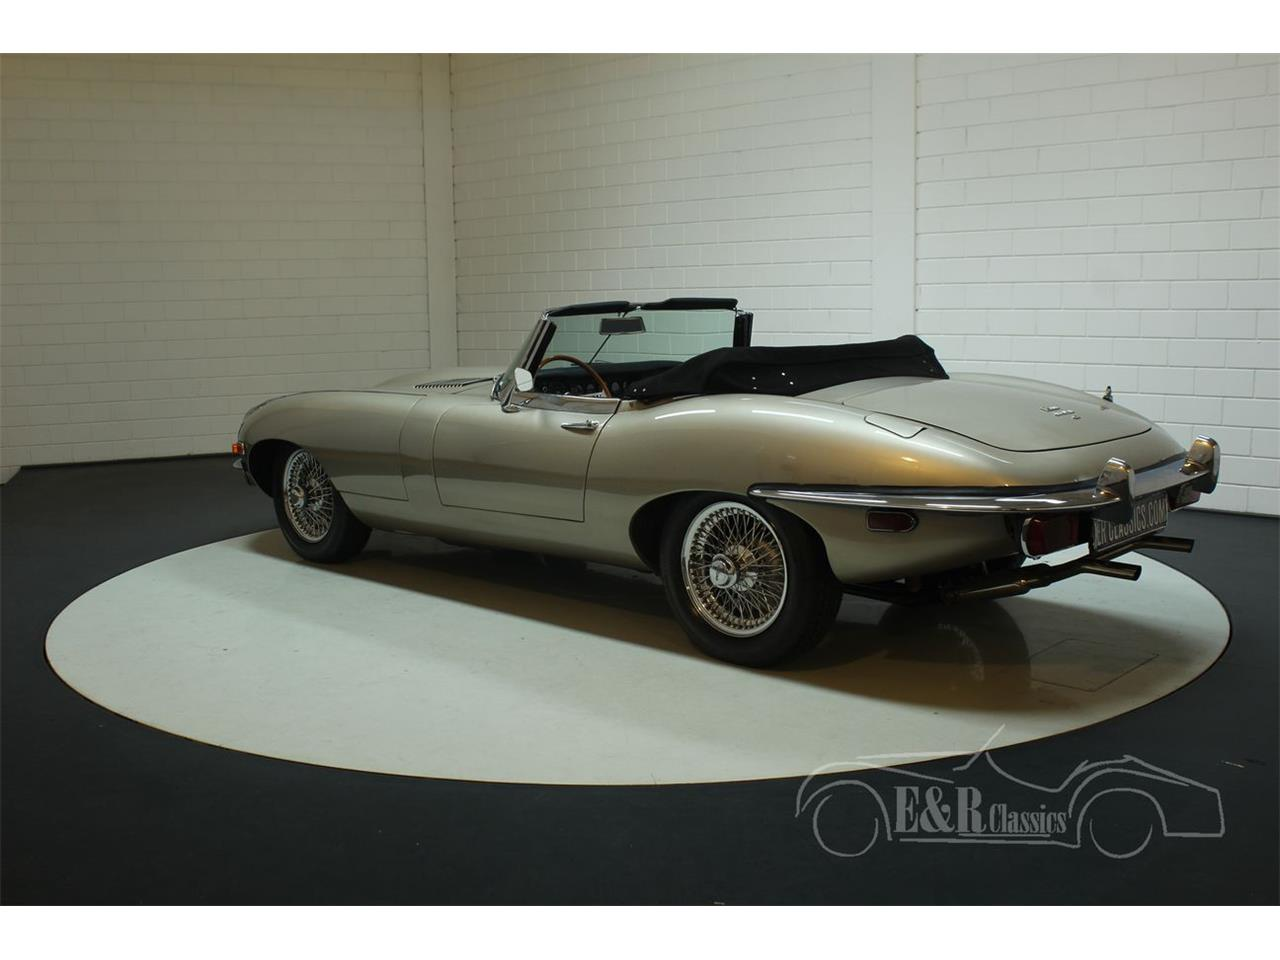 Large Picture of Classic 1970 E-Type located in - Keine Angabe - - $112,750.00 Offered by E & R Classics - PH40